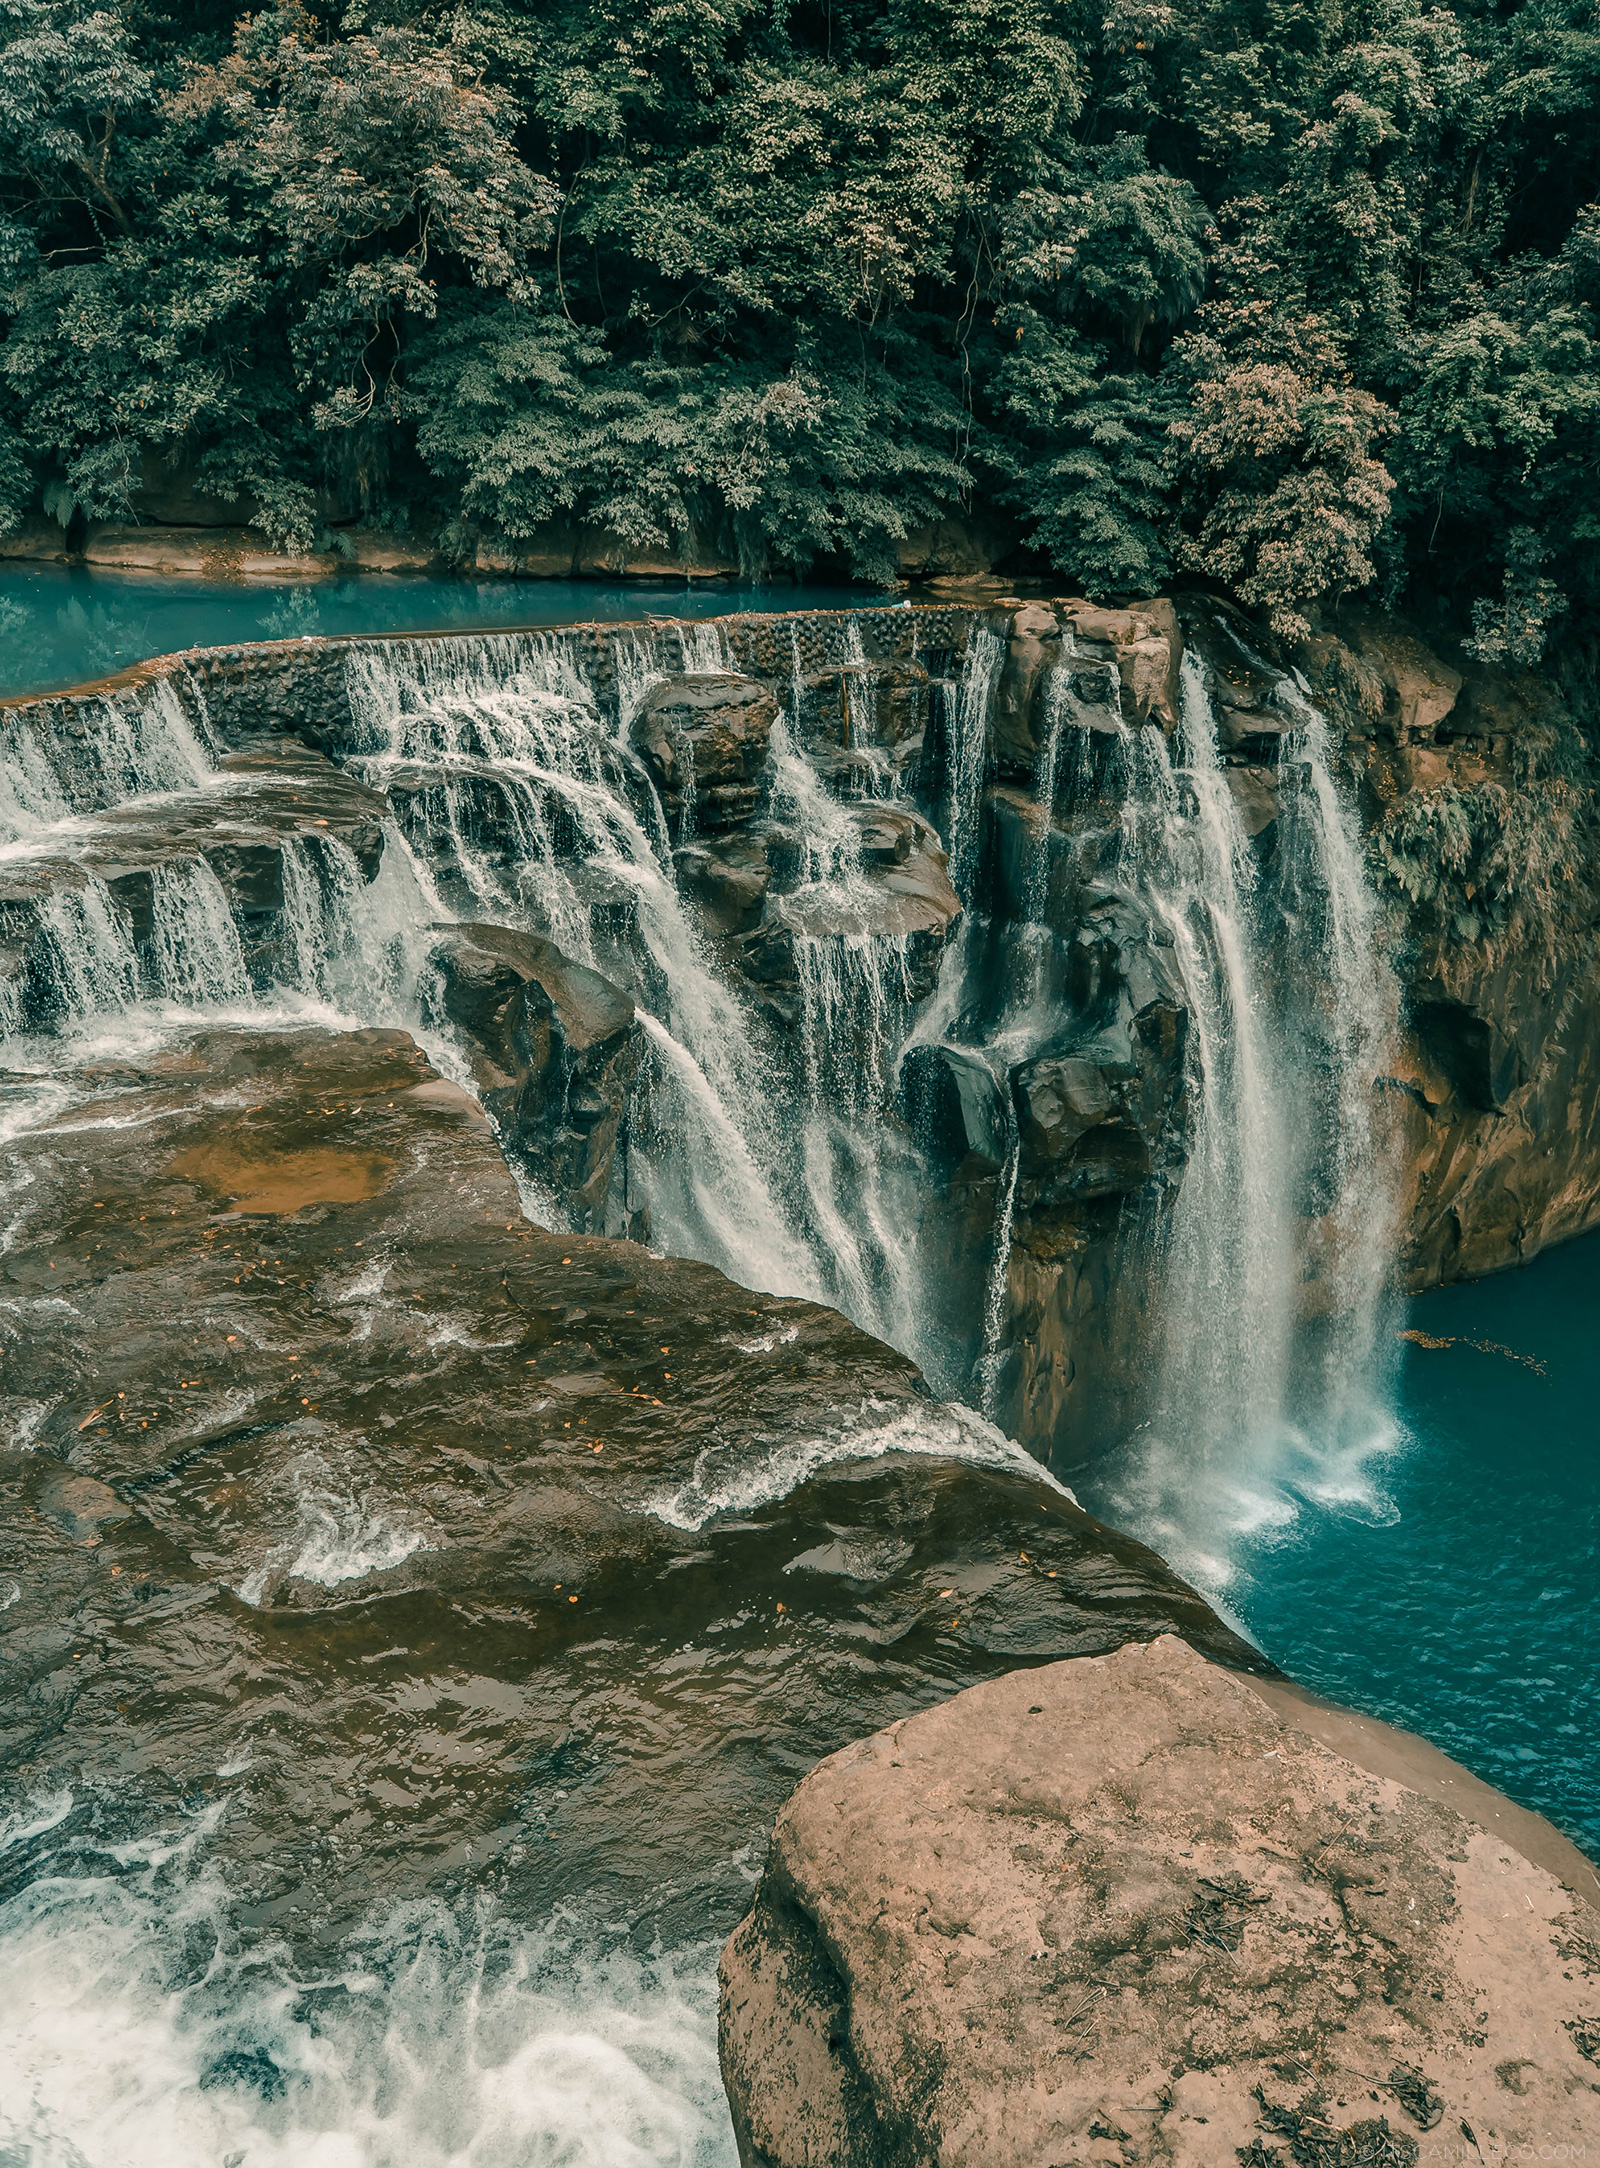 Shifen Waterfall - Camille Co